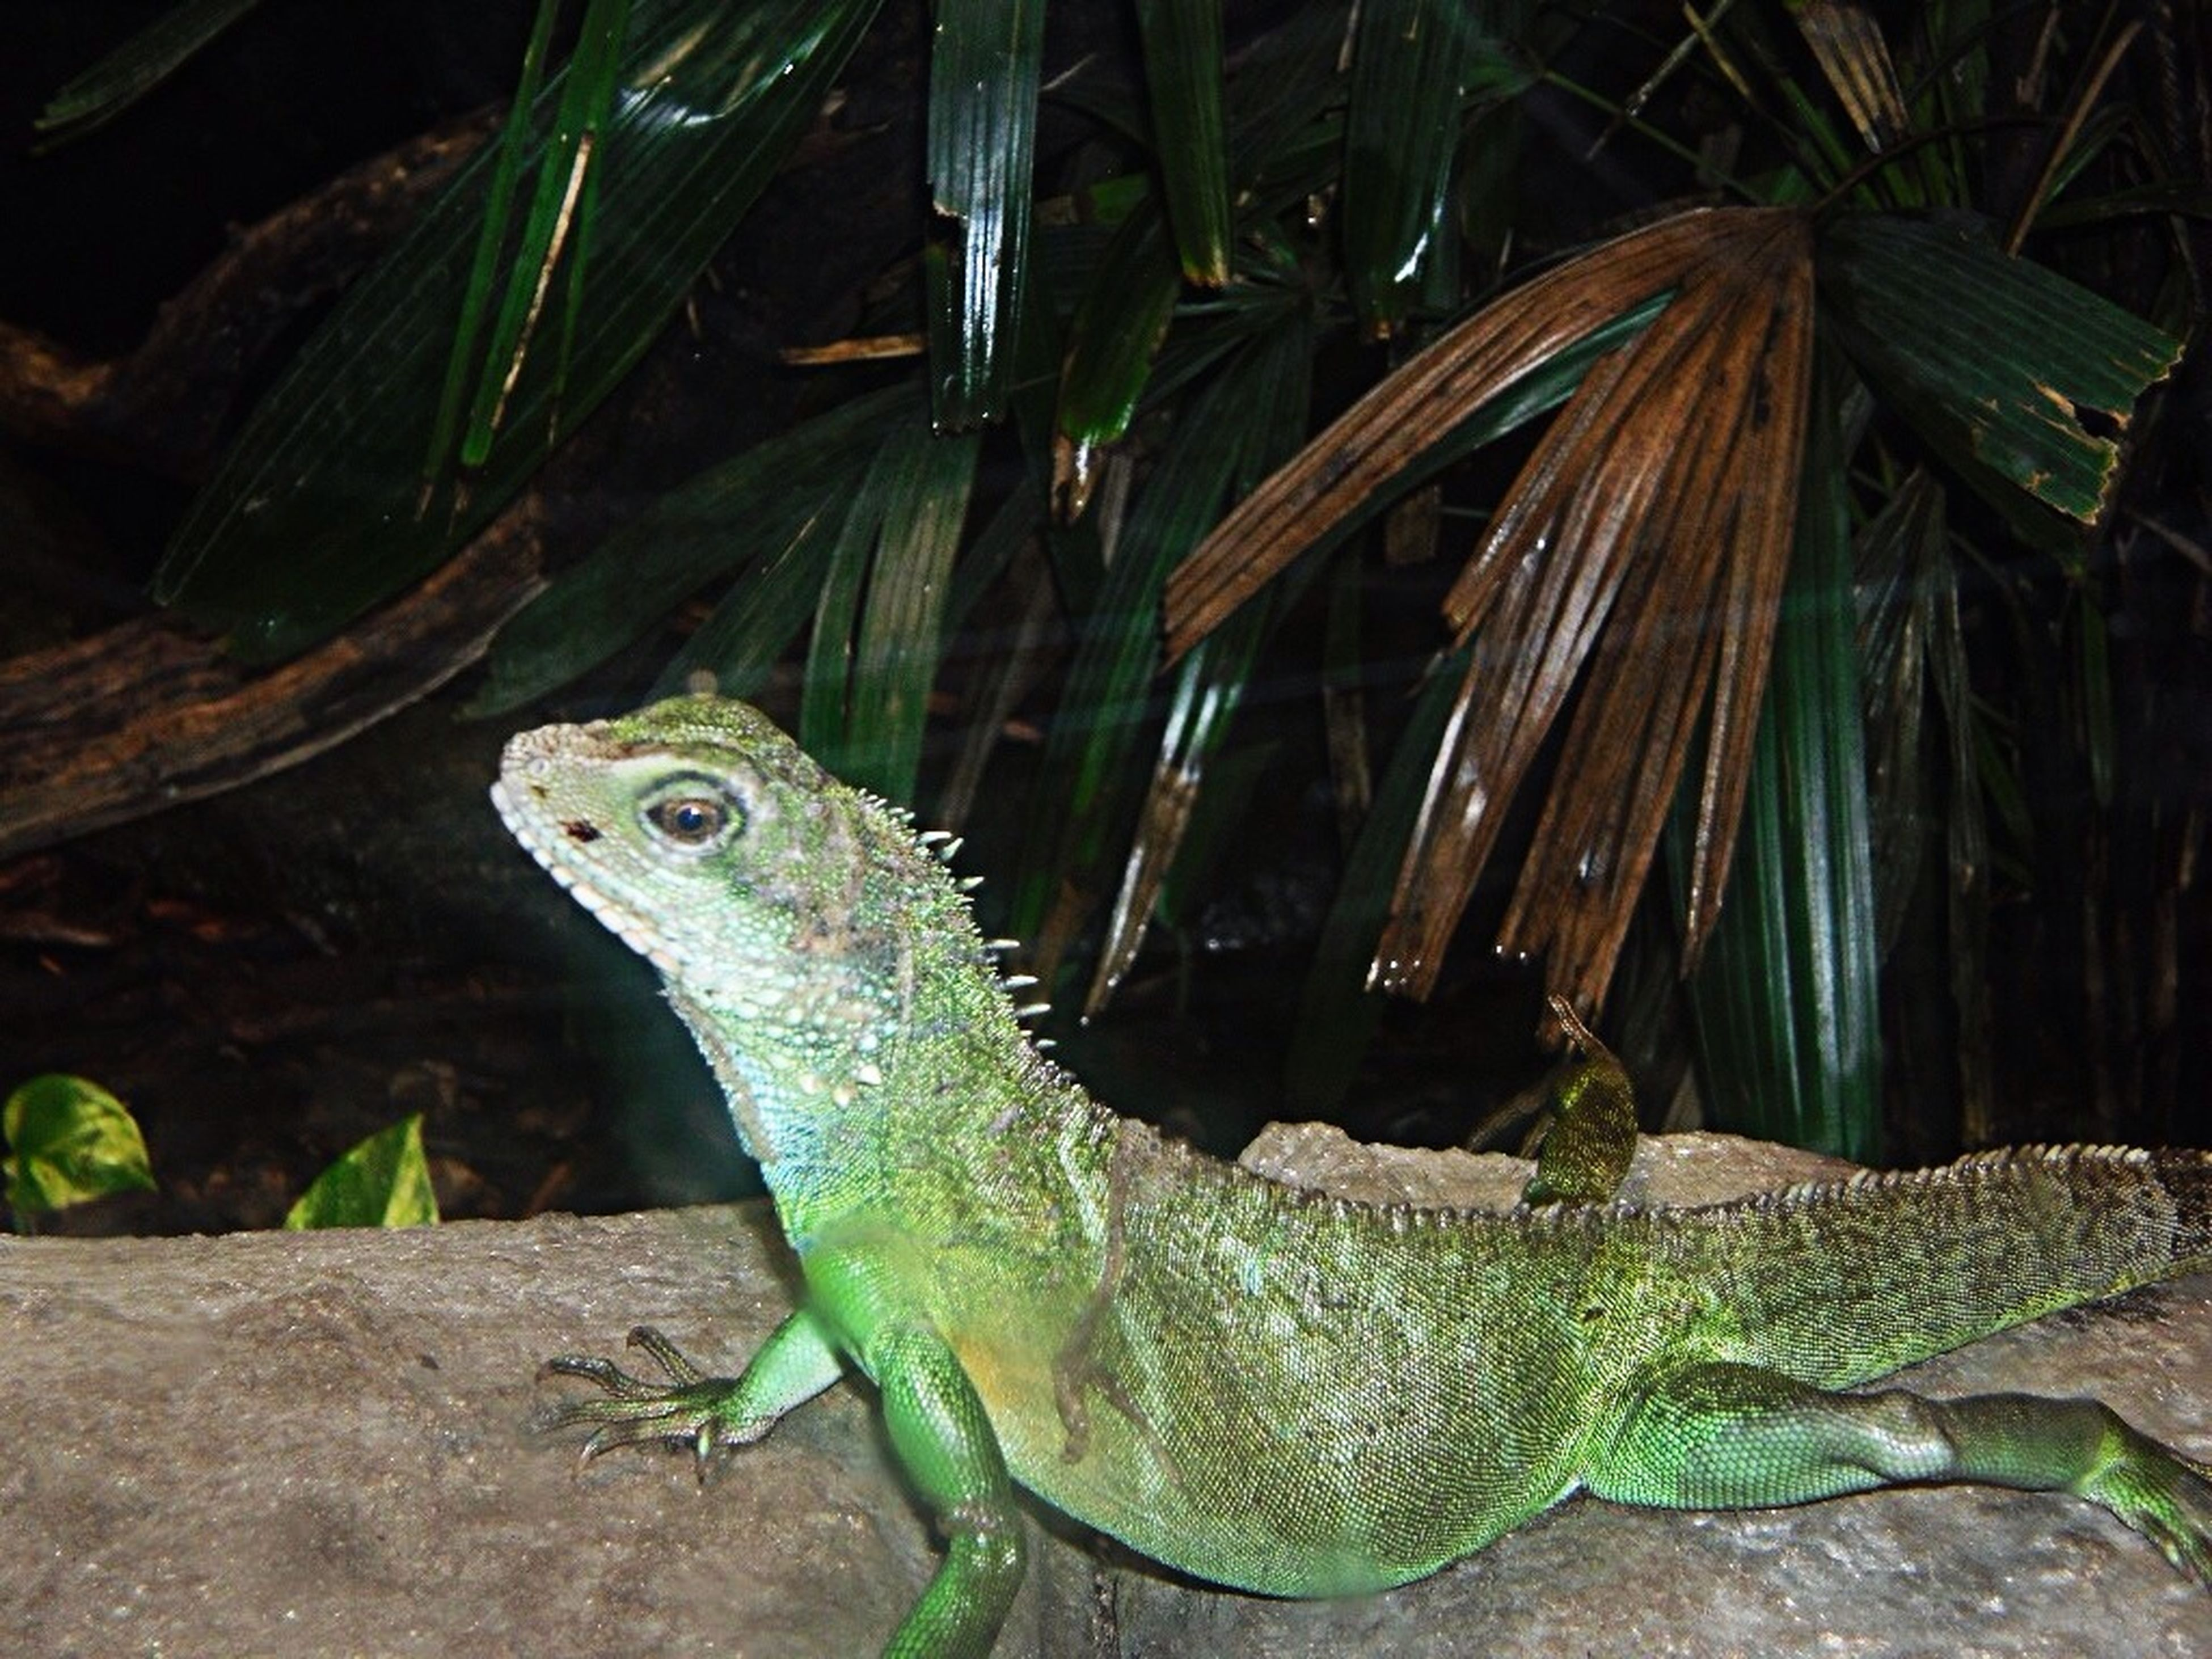 animal themes, animals in the wild, one animal, reptile, wildlife, lizard, green color, nature, plant, close-up, water, turtle, outdoors, side view, no people, frog, day, crocodile, amphibian, animal head